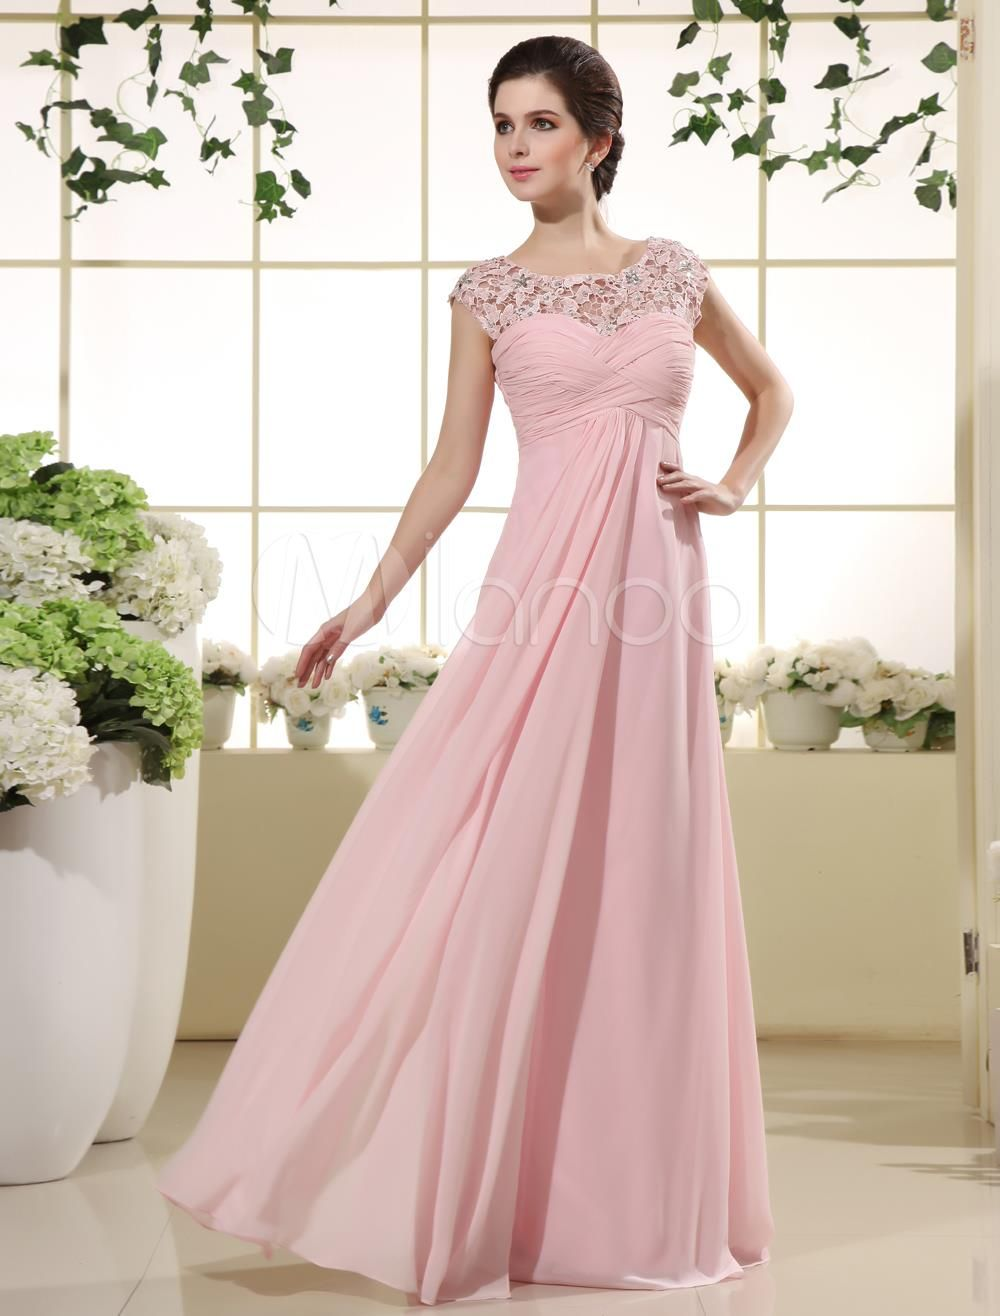 American Bridal Prom Dress And Maxi Collection 2015 | She12: Girls Beauty Salon